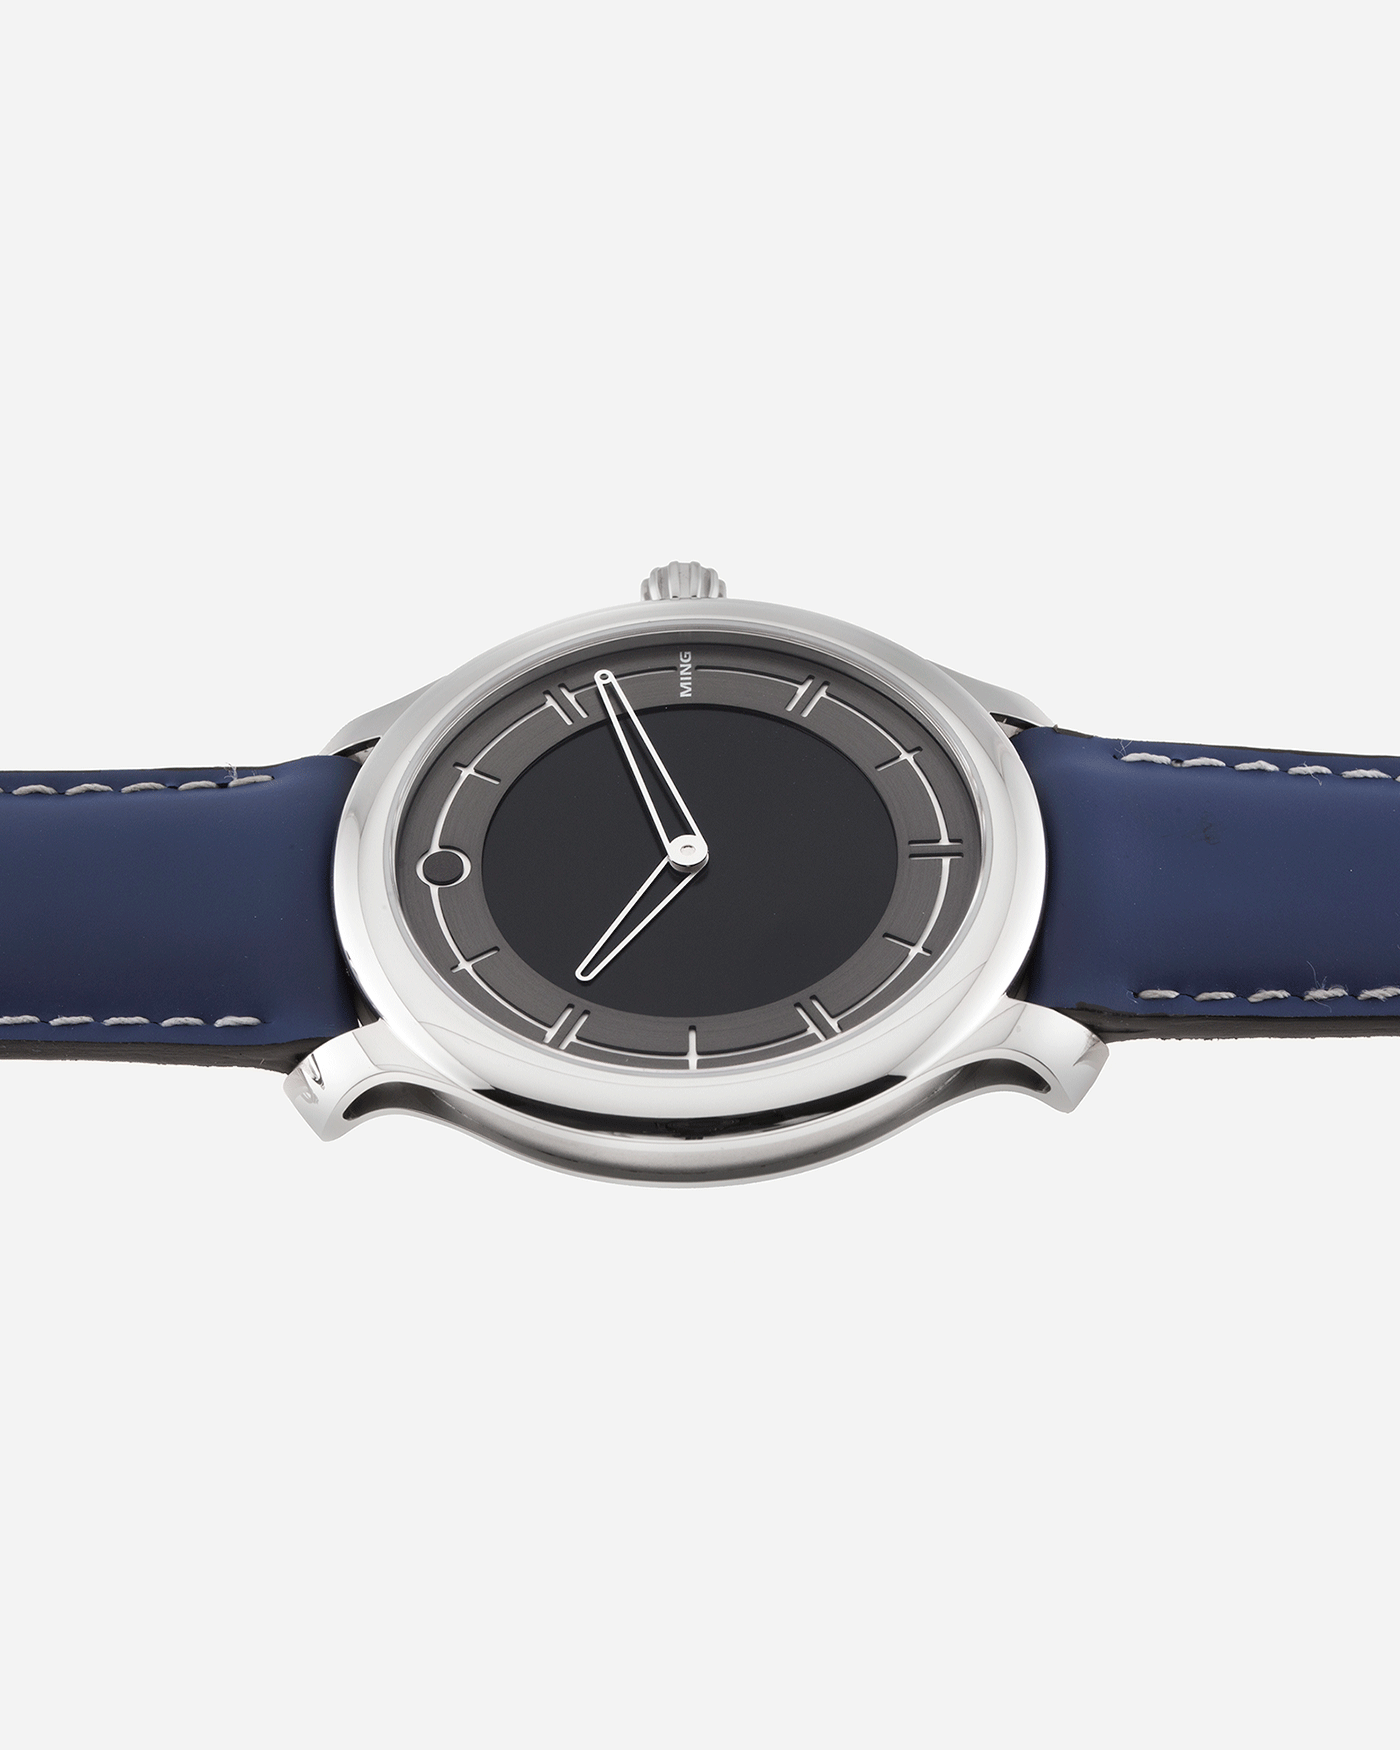 Brand: Ming Year: 2020 Model: 27.01 Material: Stainless Steel Movement: Heavily modified ETA Peseux 7001 Case Diameter: 38mm Strap: Jean Rousseau Blue Rubber for MING